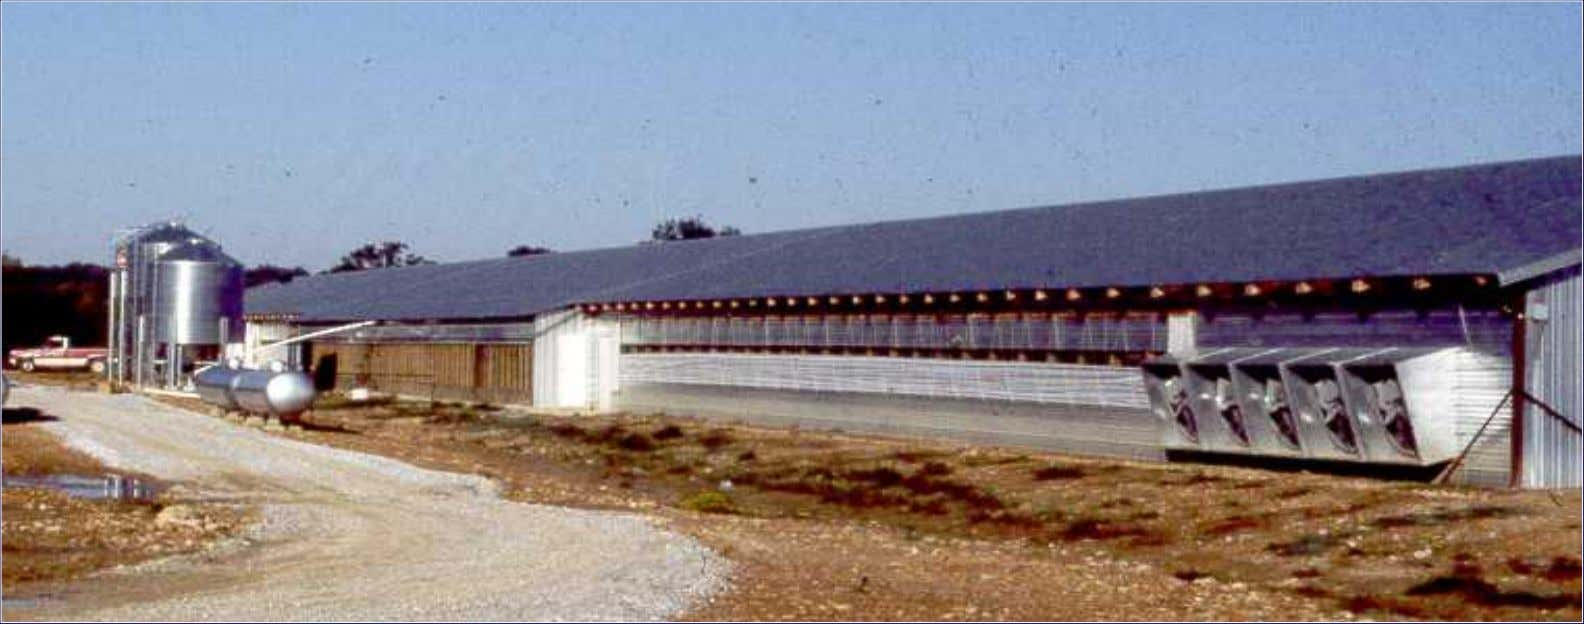 Barn Barn with with Tunnel Tunnel Ventilation Ventilation and and Evaporative Evaporative Cooling Cooling Pads Pads